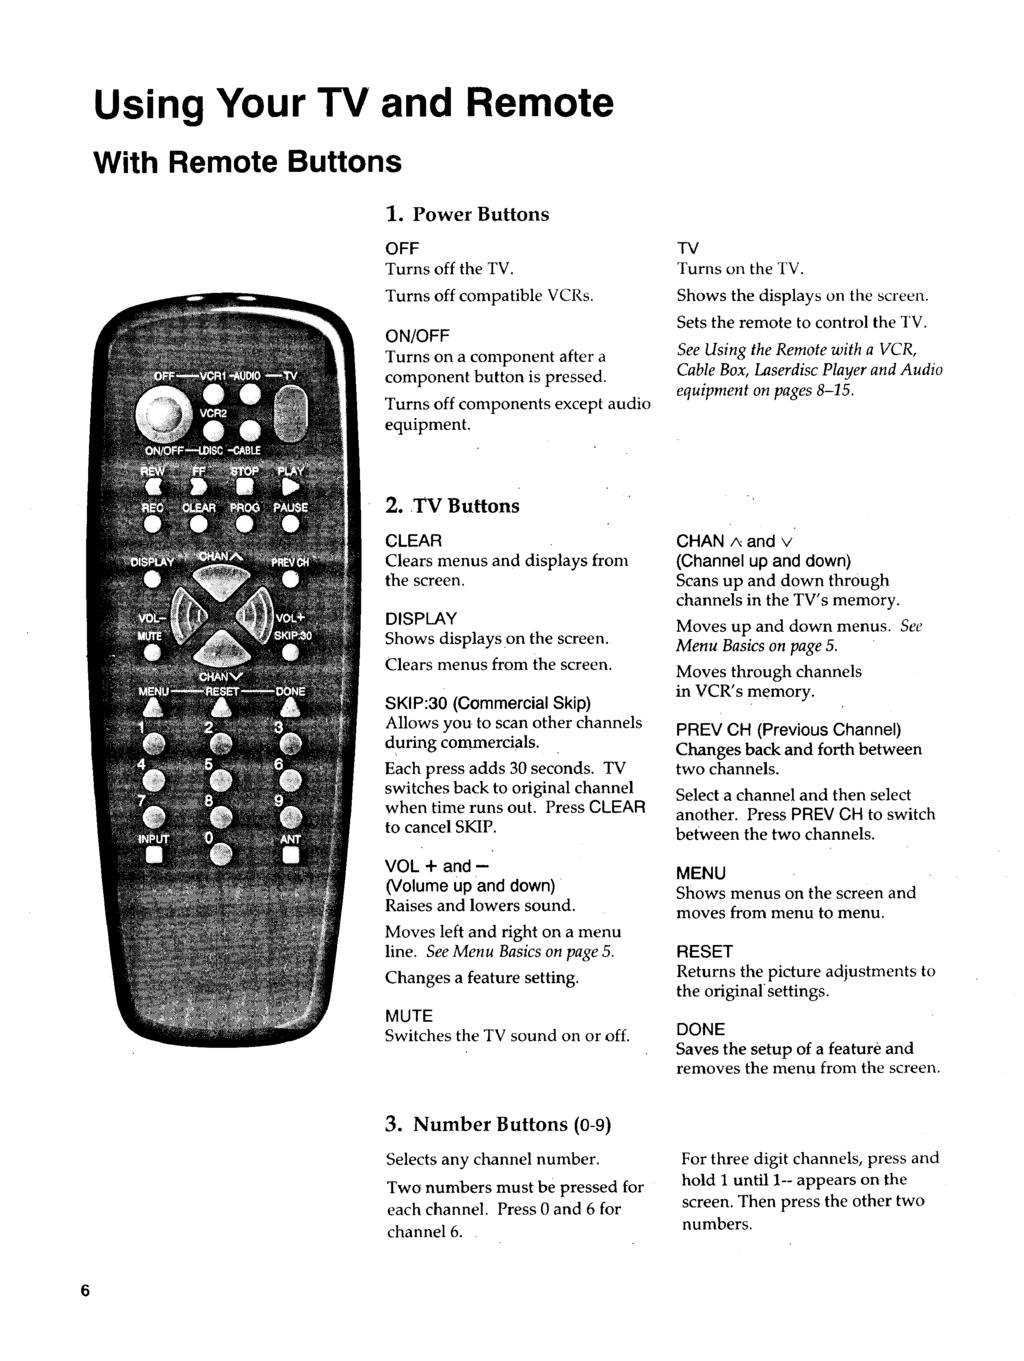 Using Your TV and Remote With Remote Buttons 1. Power Buttons OFF Turns off the TV. TV Turns on the TV. Turns off compatible ON/OFF VCRs. Turns on a component after a component button is pressed.